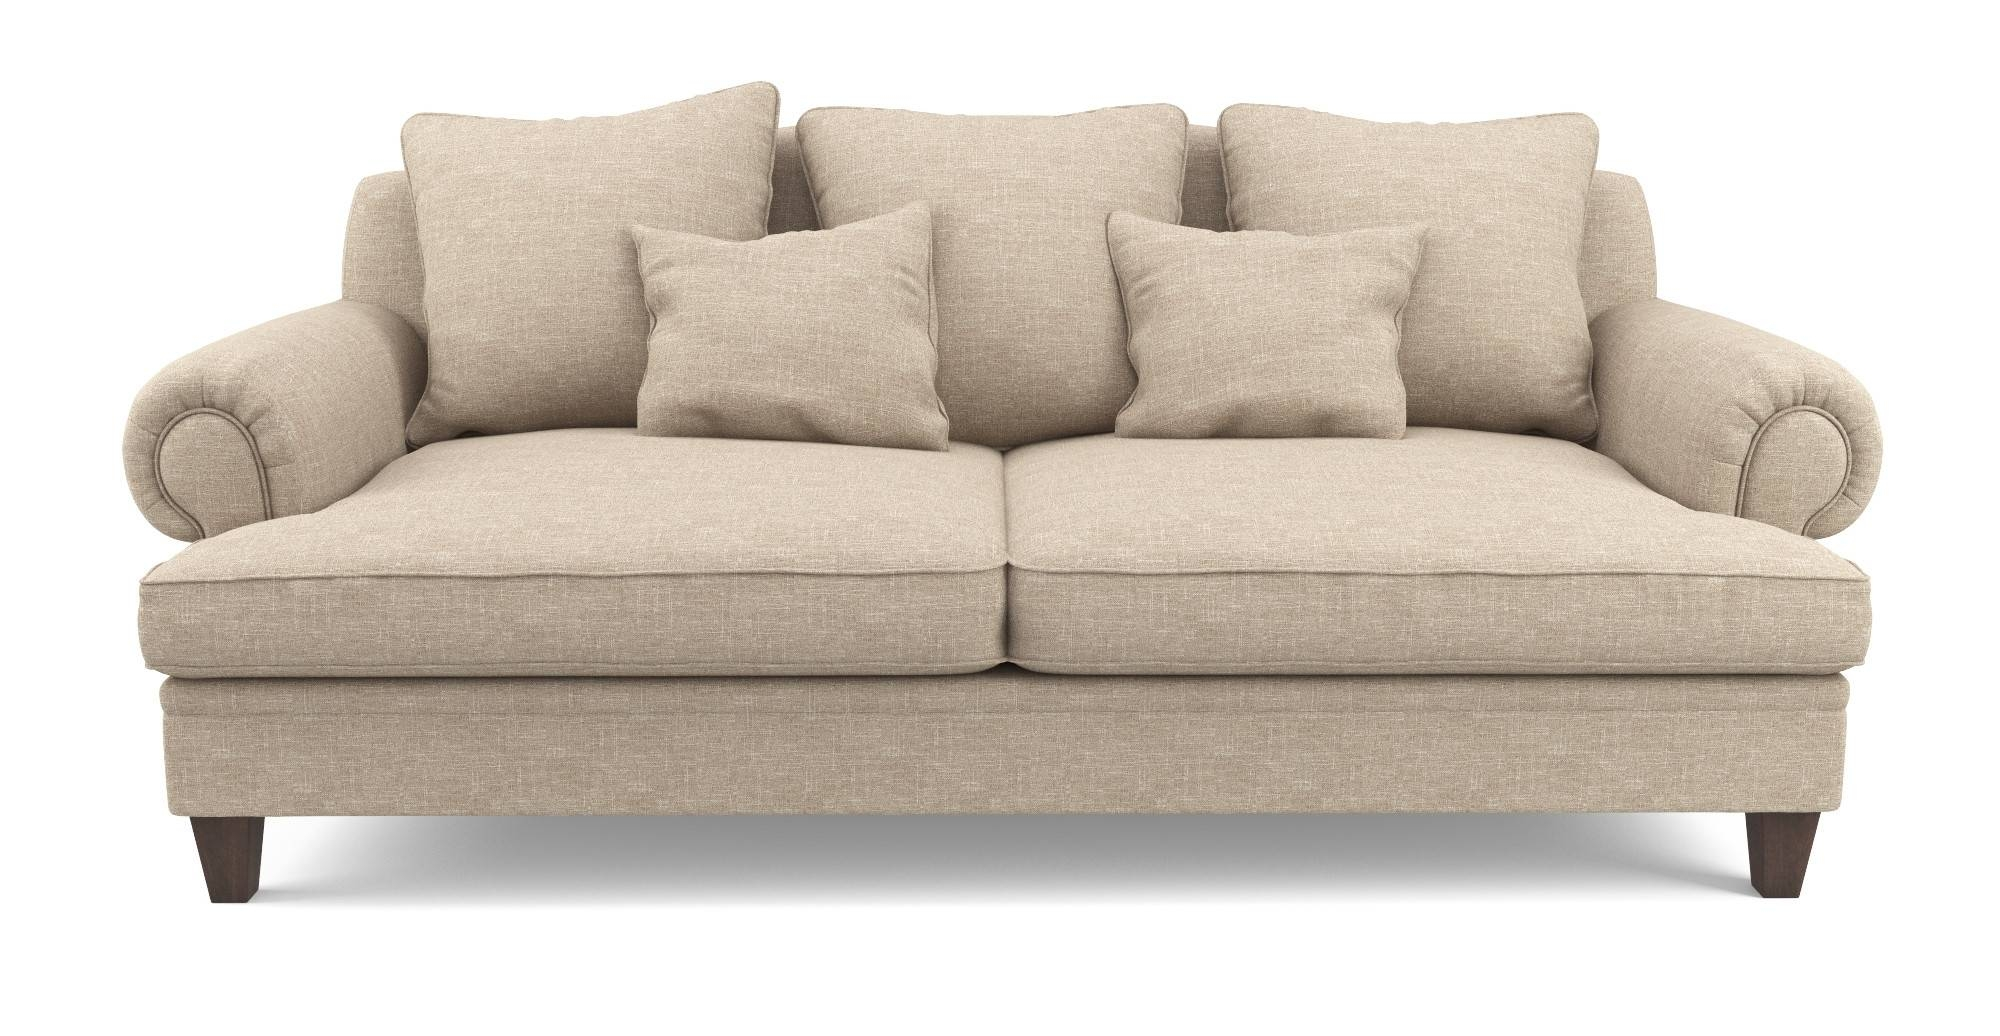 Sofas Center : French Provincial Sofa Set Cane Hayat Galleria with 3 Seater Sofas For Sale (Image 20 of 30)